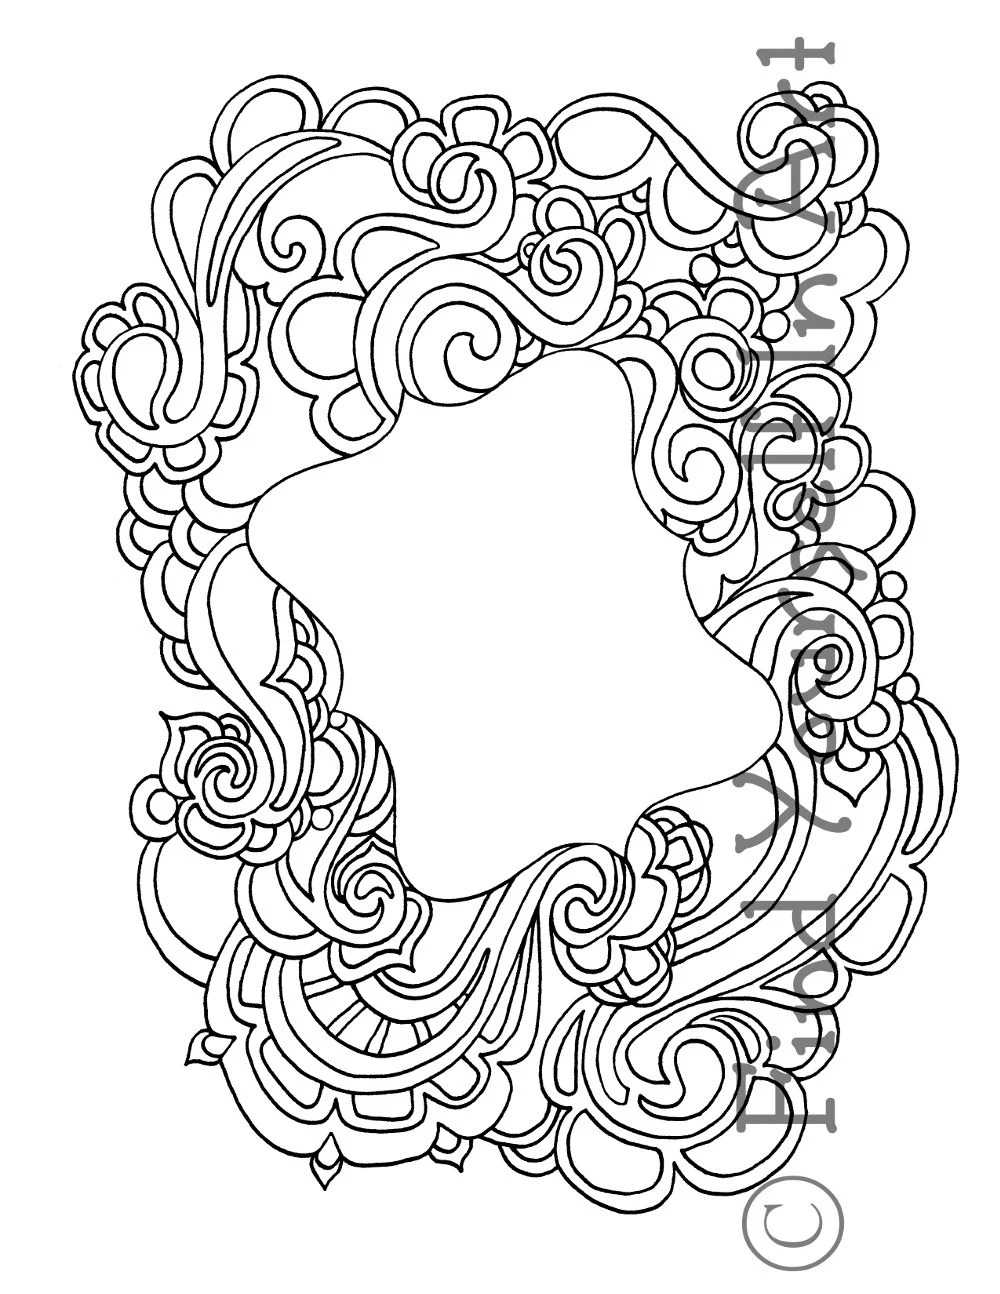 Adult Coloring Page Black And White Border Design 3